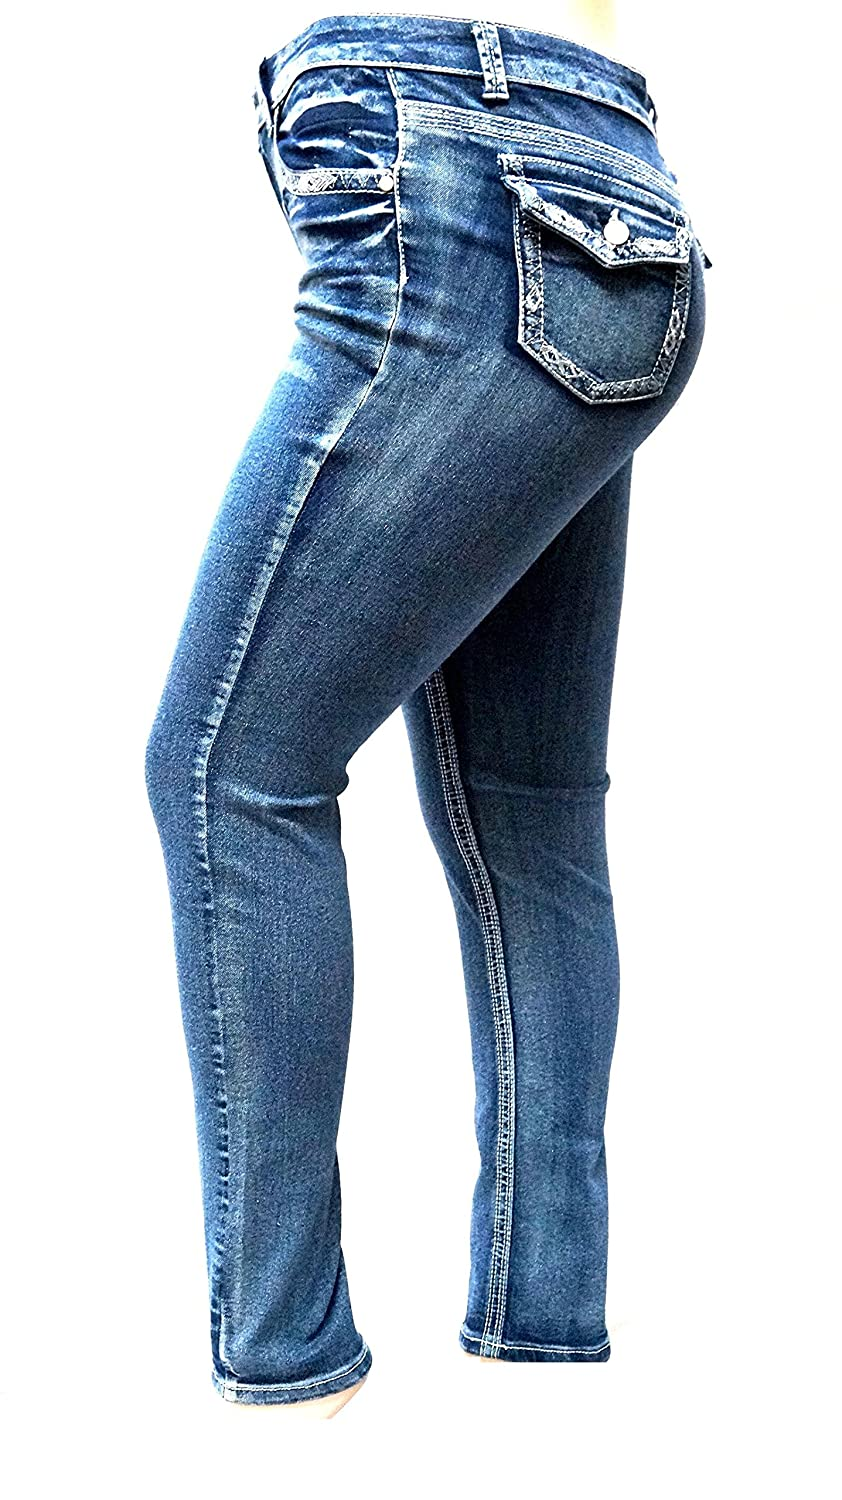 2857e8642bf These JACK David denim jeans pants are comfortable and amazingly versatile.  Fabric Content  76% Cotton  22% Polyester  2% Spandex-Stretch High rise  skinny  ...